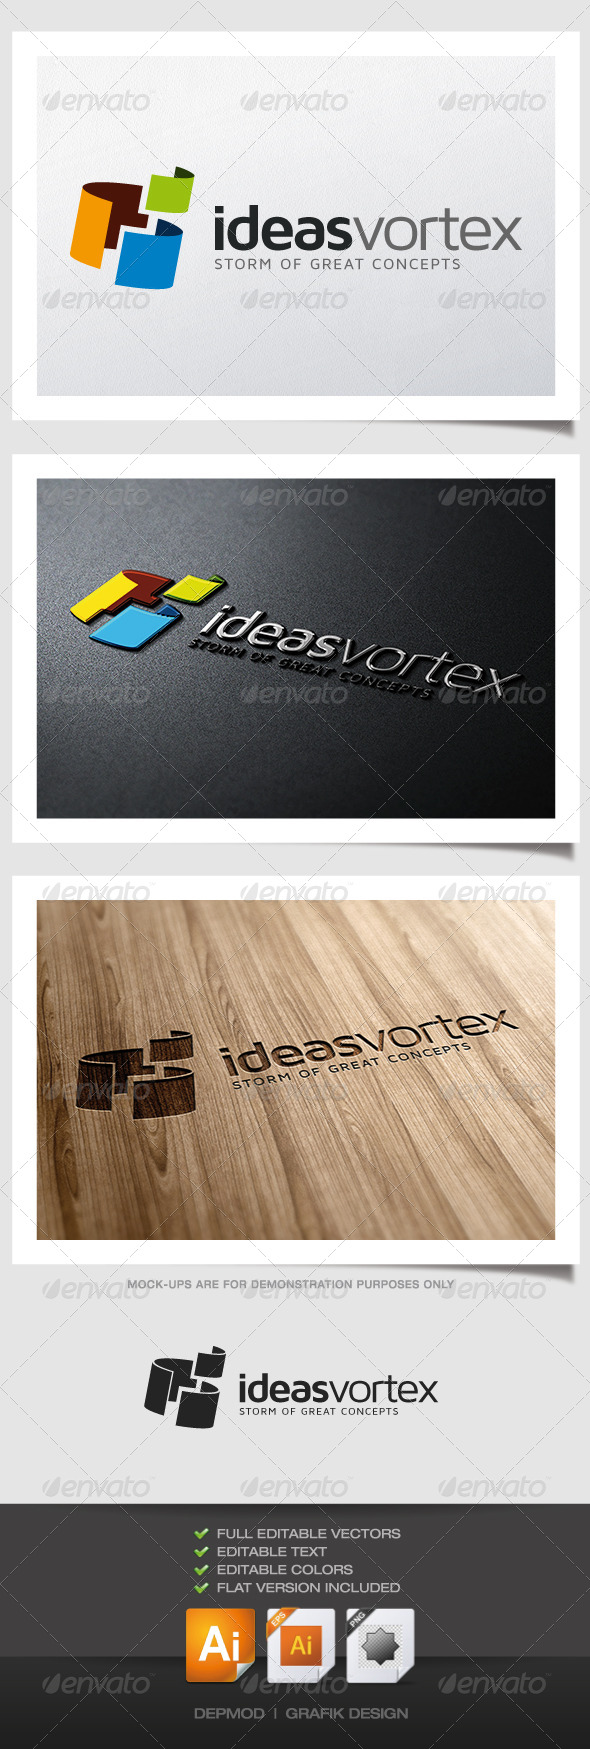 Ideas Vortex Logo - Abstract Logo Templates